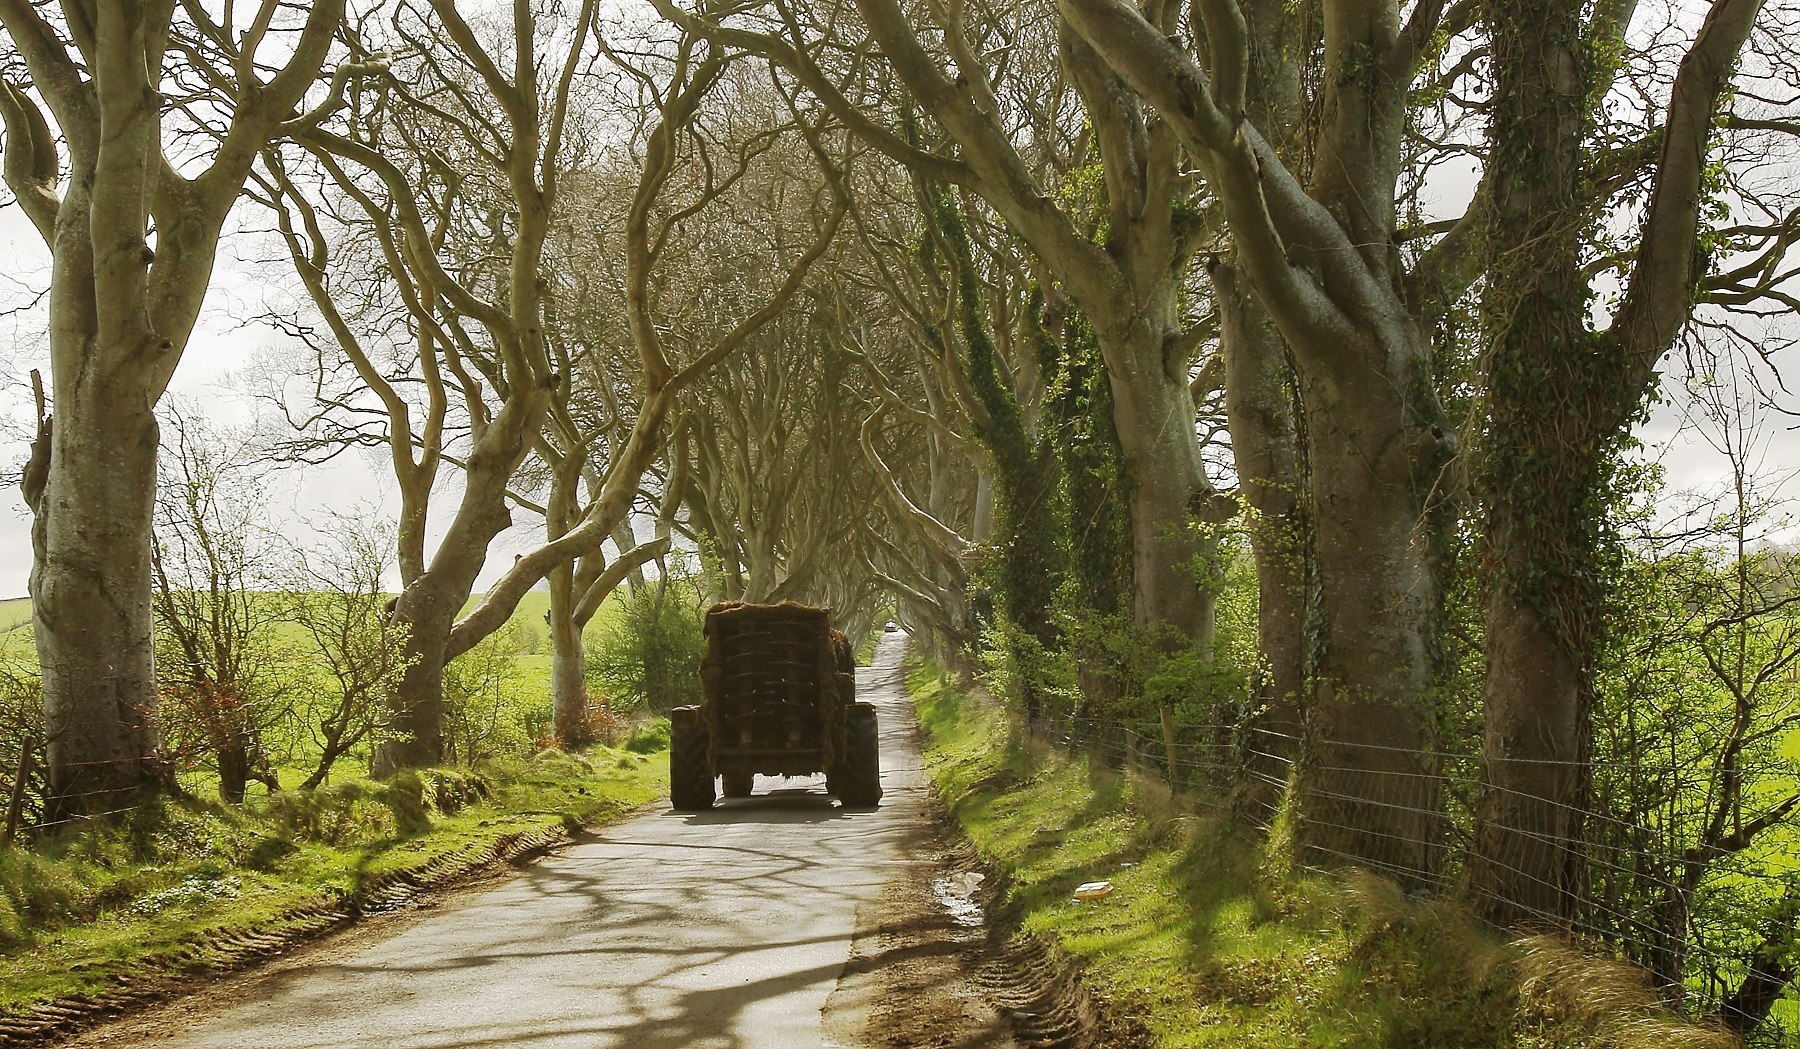 UFU asking farmers to be mindful of bikes on roads